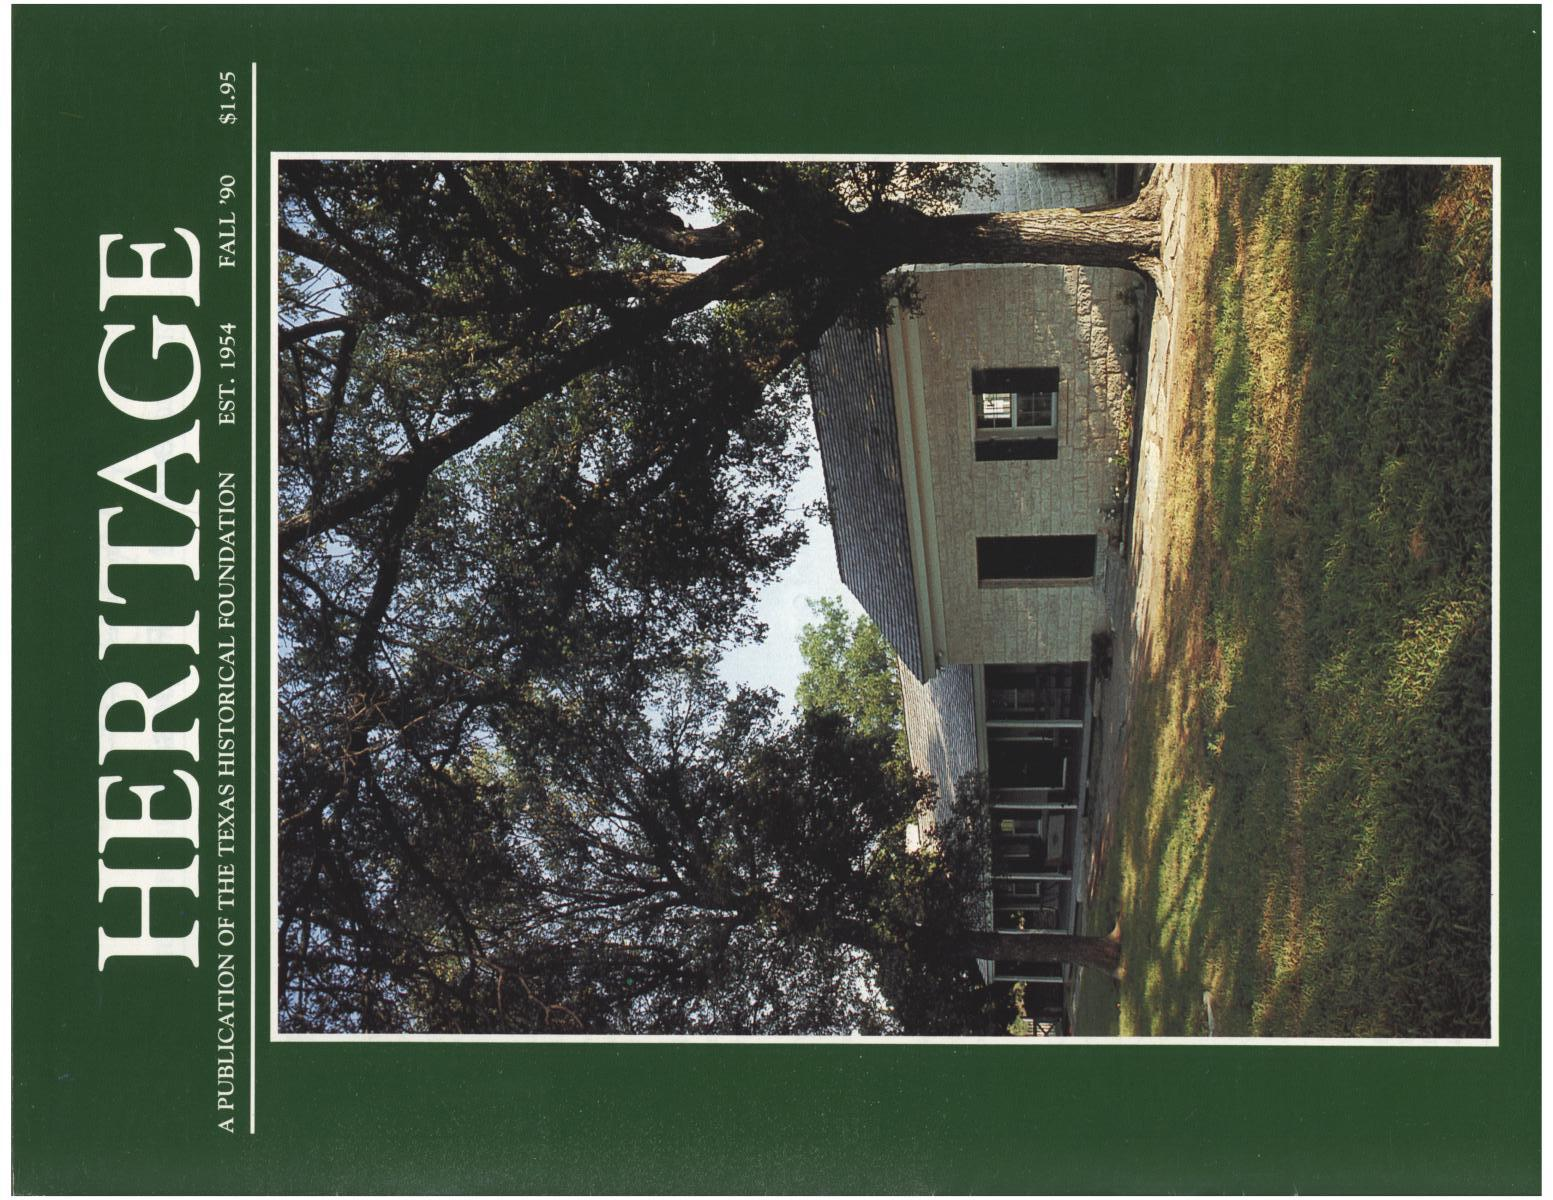 Heritage, Volume 8, Number 4, Fall 1990                                                                                                      Front Cover